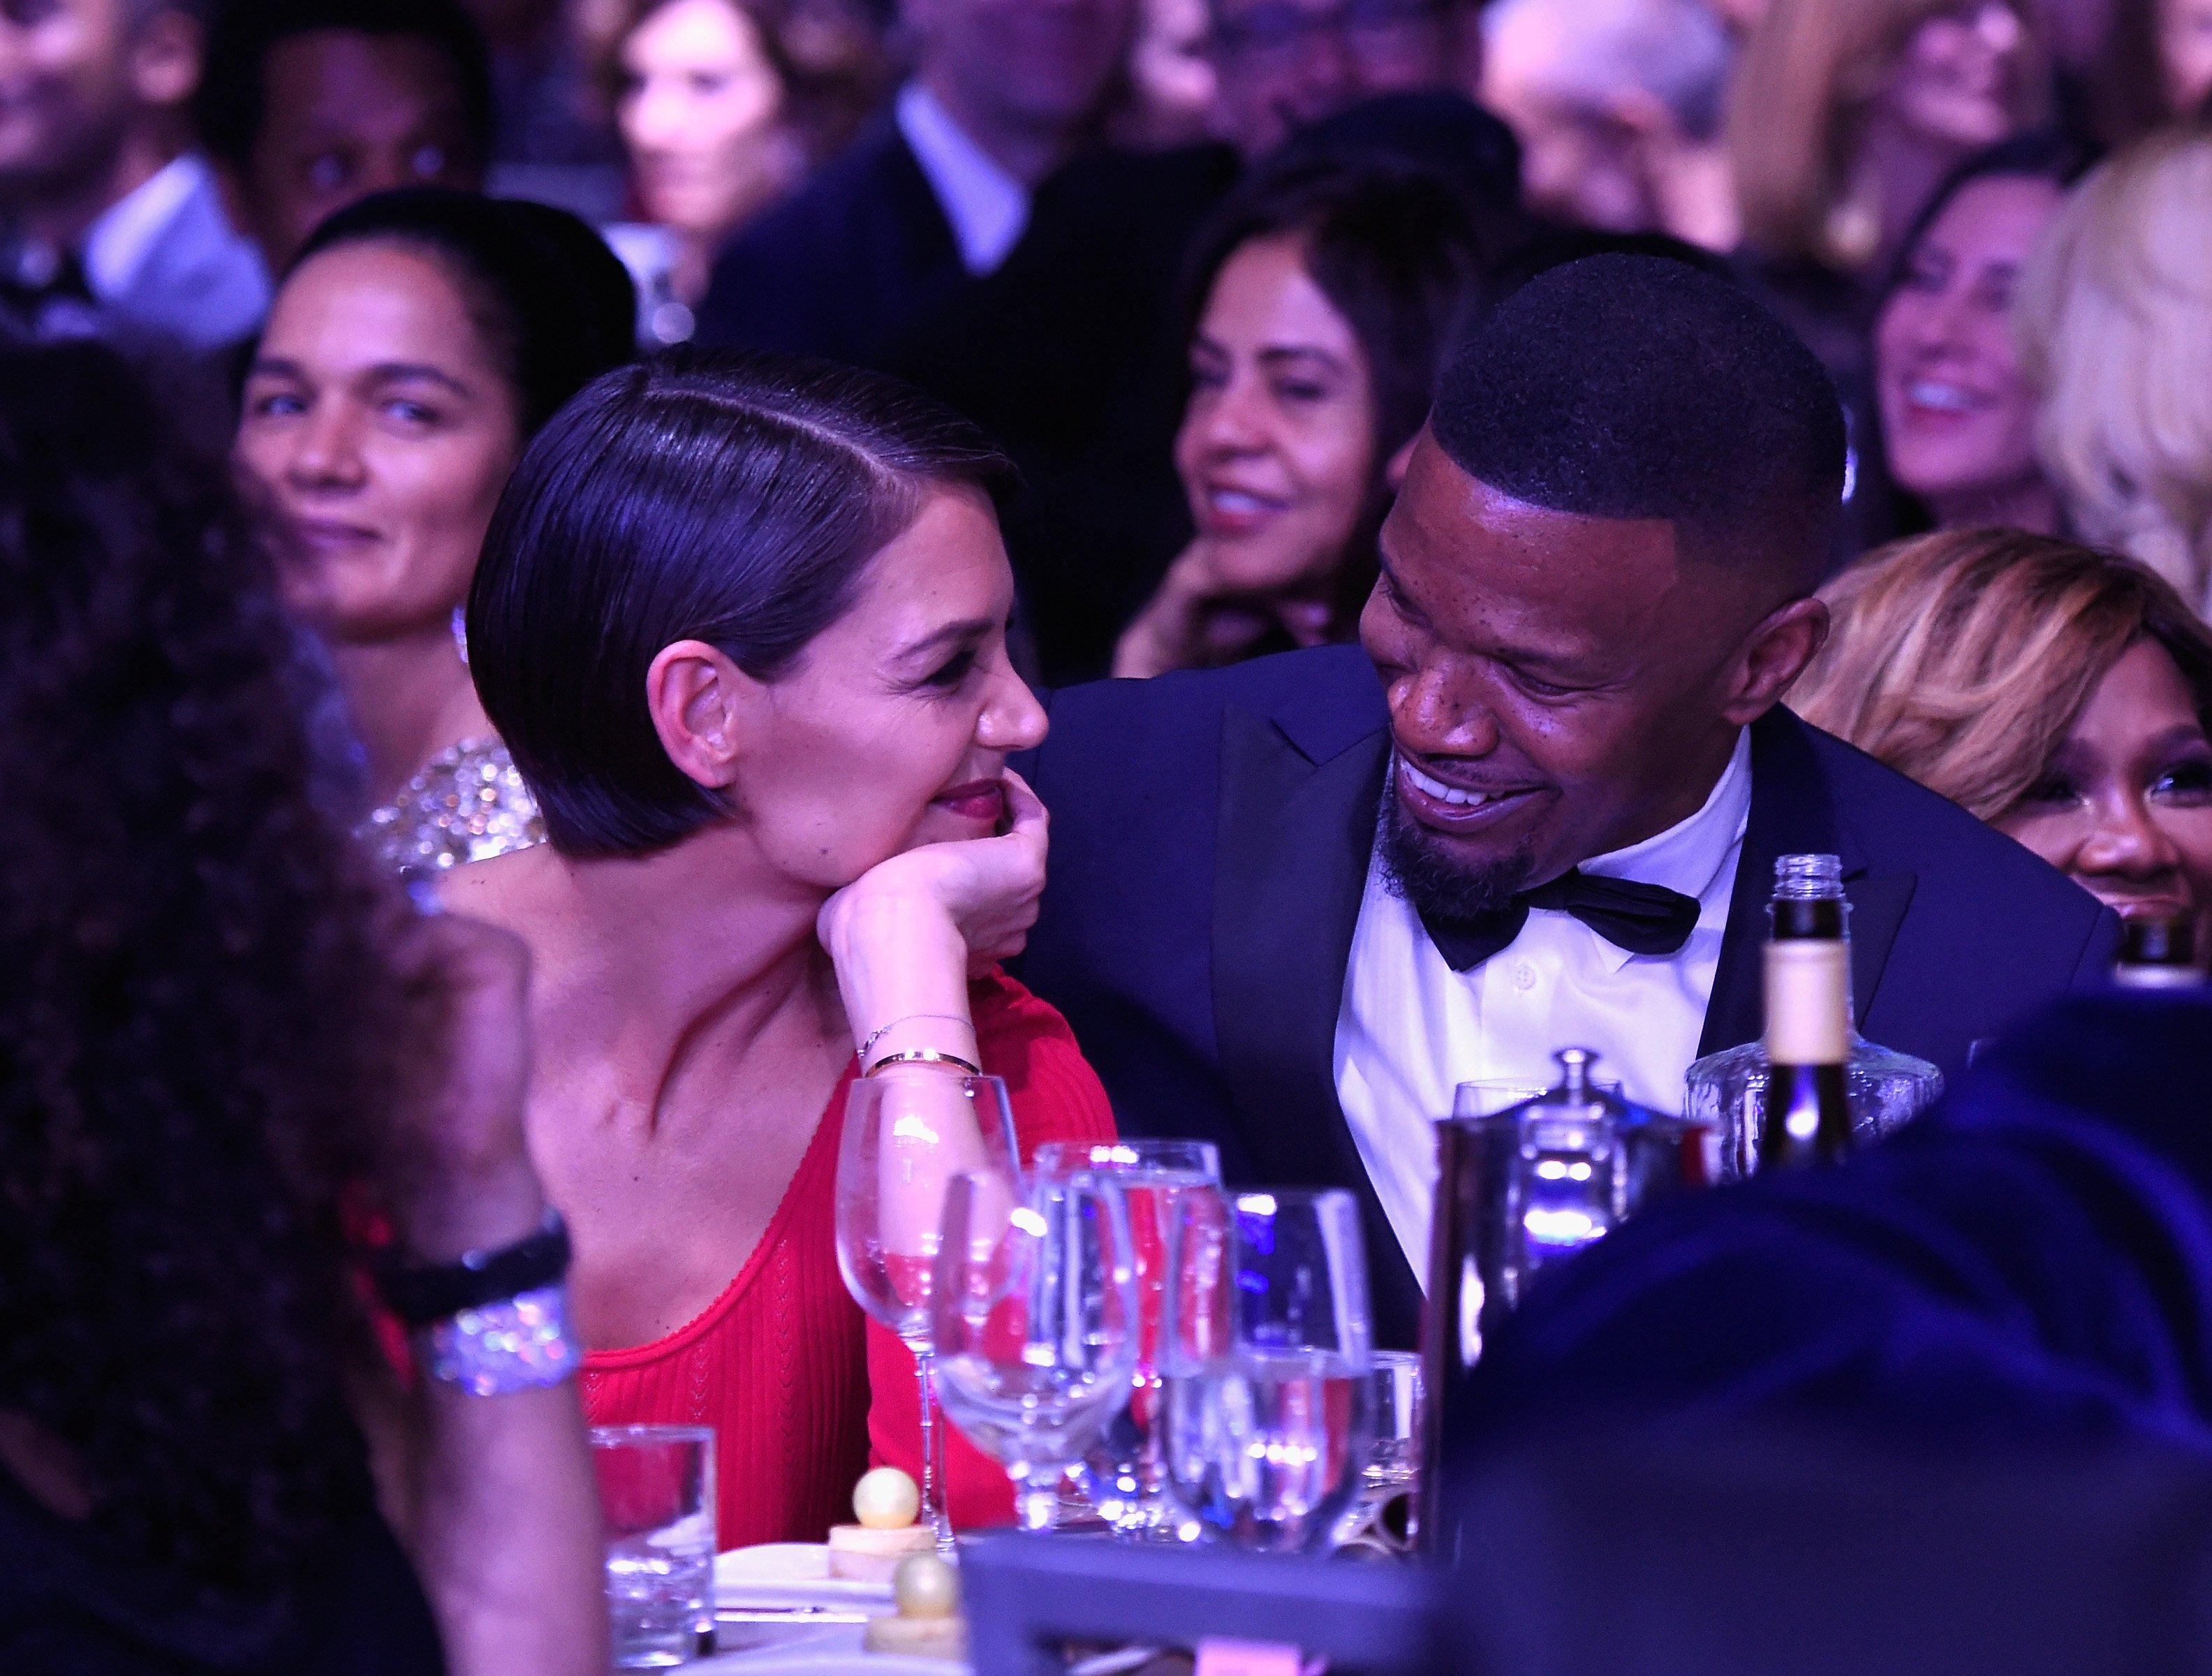 Katie Holmes and Jamie Foxx at the Clive Davis and Recording Academy Pre-GRAMMY Gala and GRAMMY Salute to Industry Icons Honoring Jay-Z on January 27, 2018 l Source: Getty Images